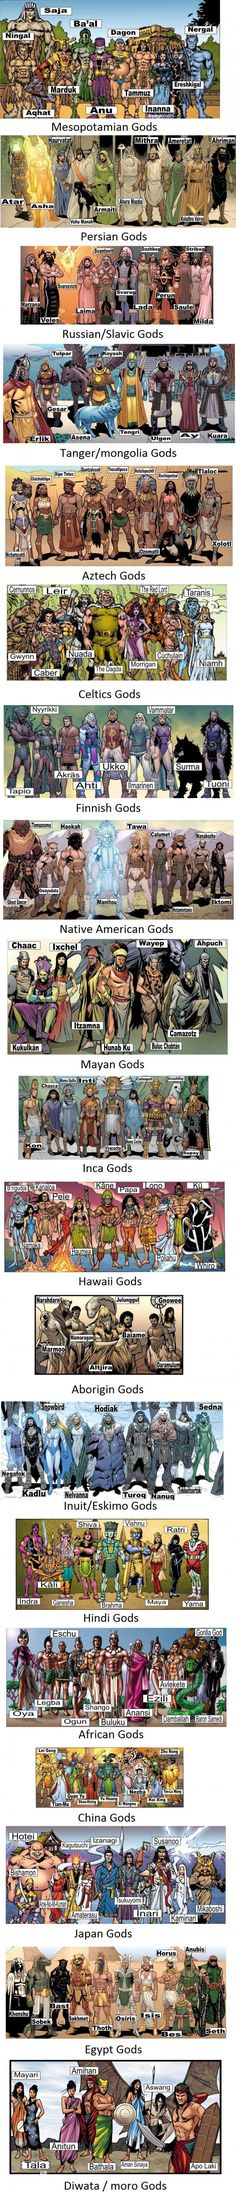 Choose your favorite Gods team, and give them skills. - 9GAG ~ With optimal health often comes clarity of thought. Click now to visit my blog for your free fitness solutions!